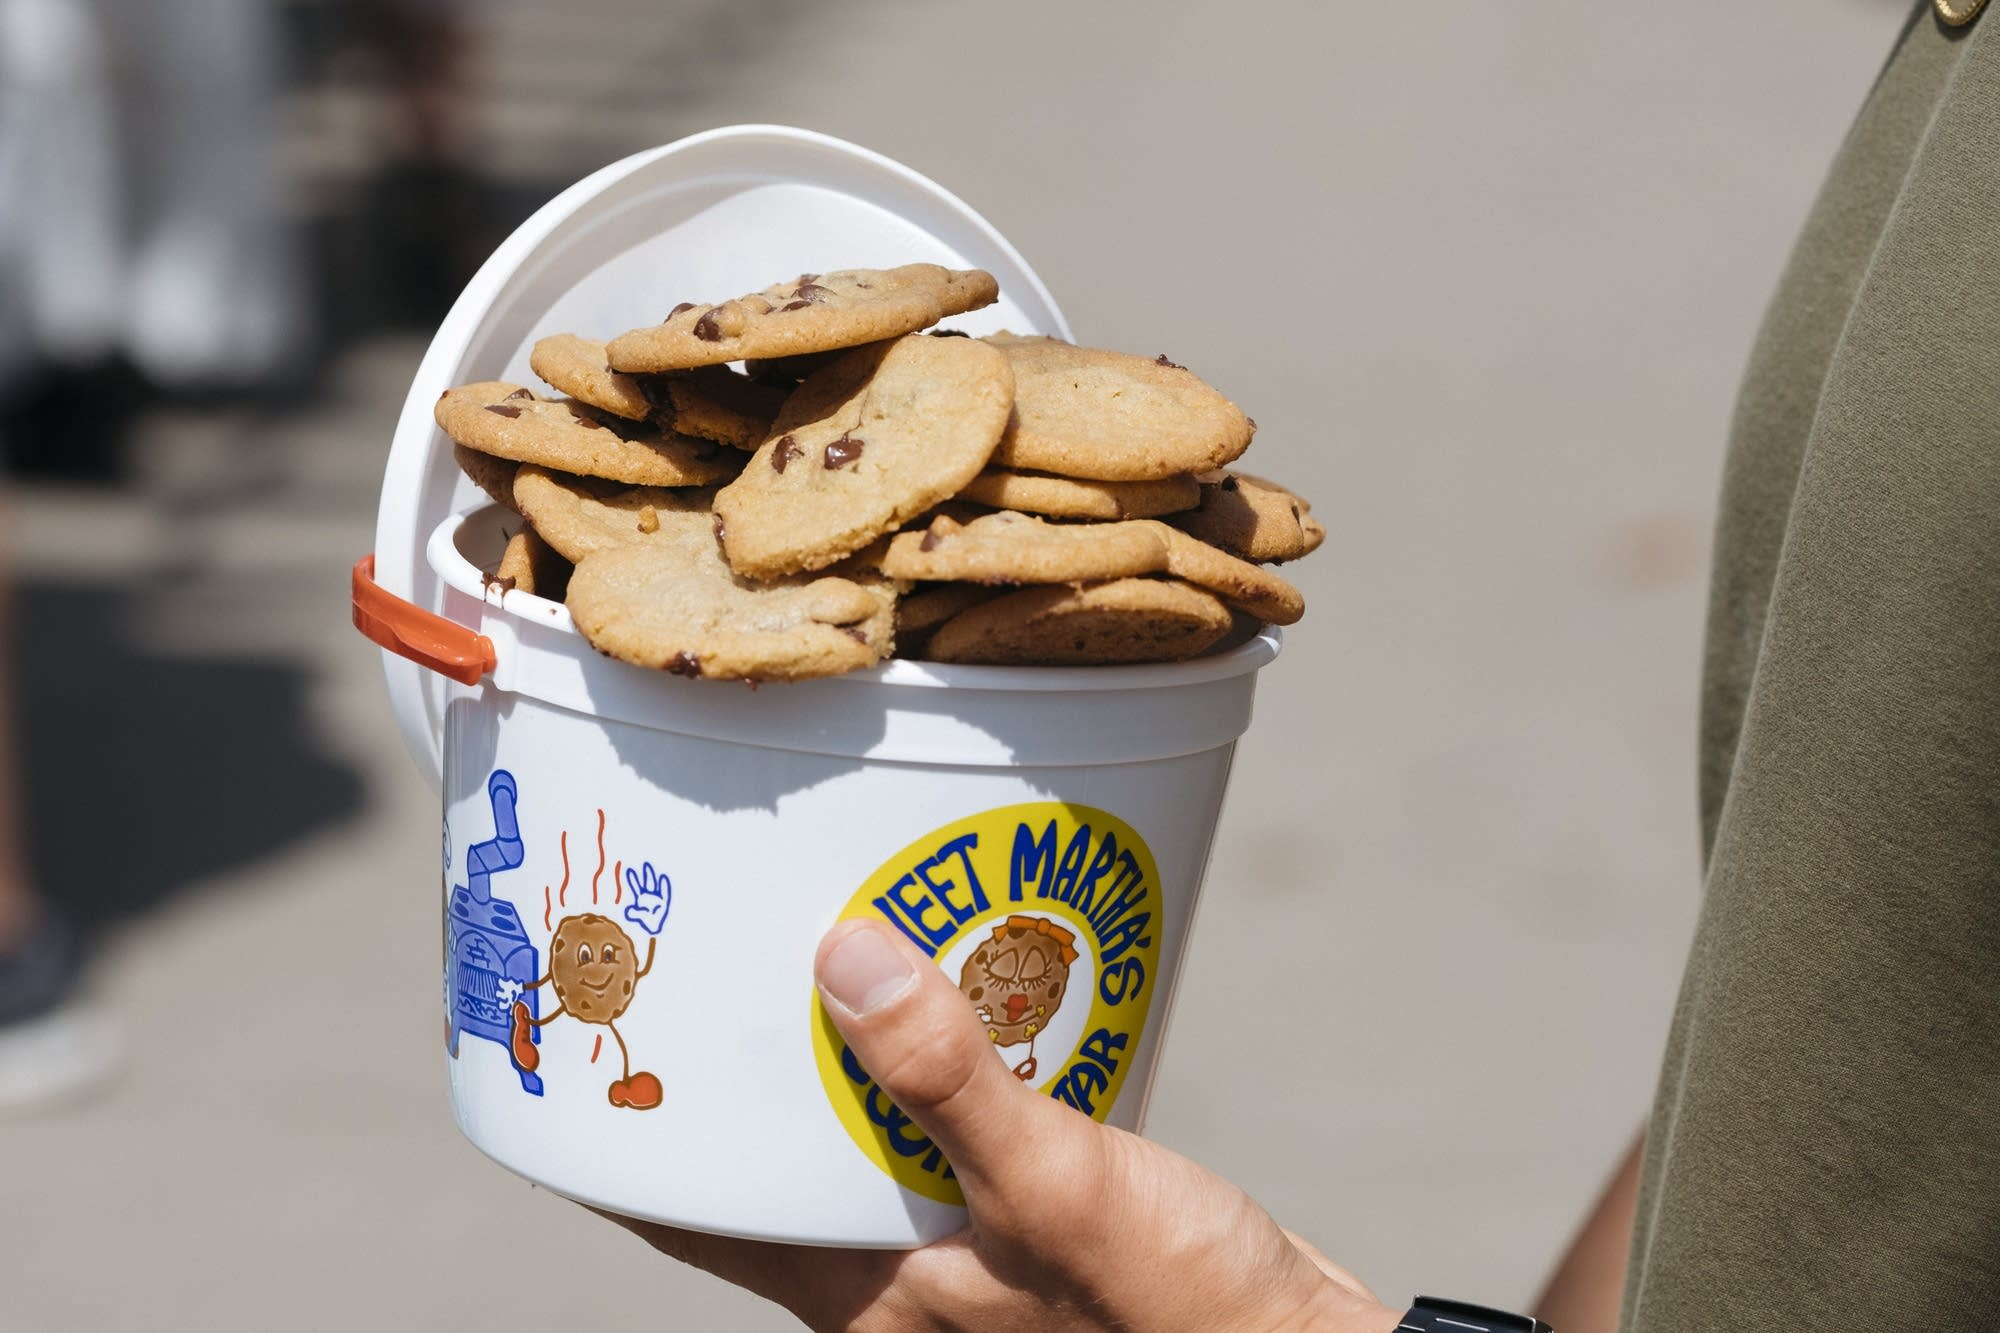 A fairgoer holds a full bucket of Sweet Martha's cookies.